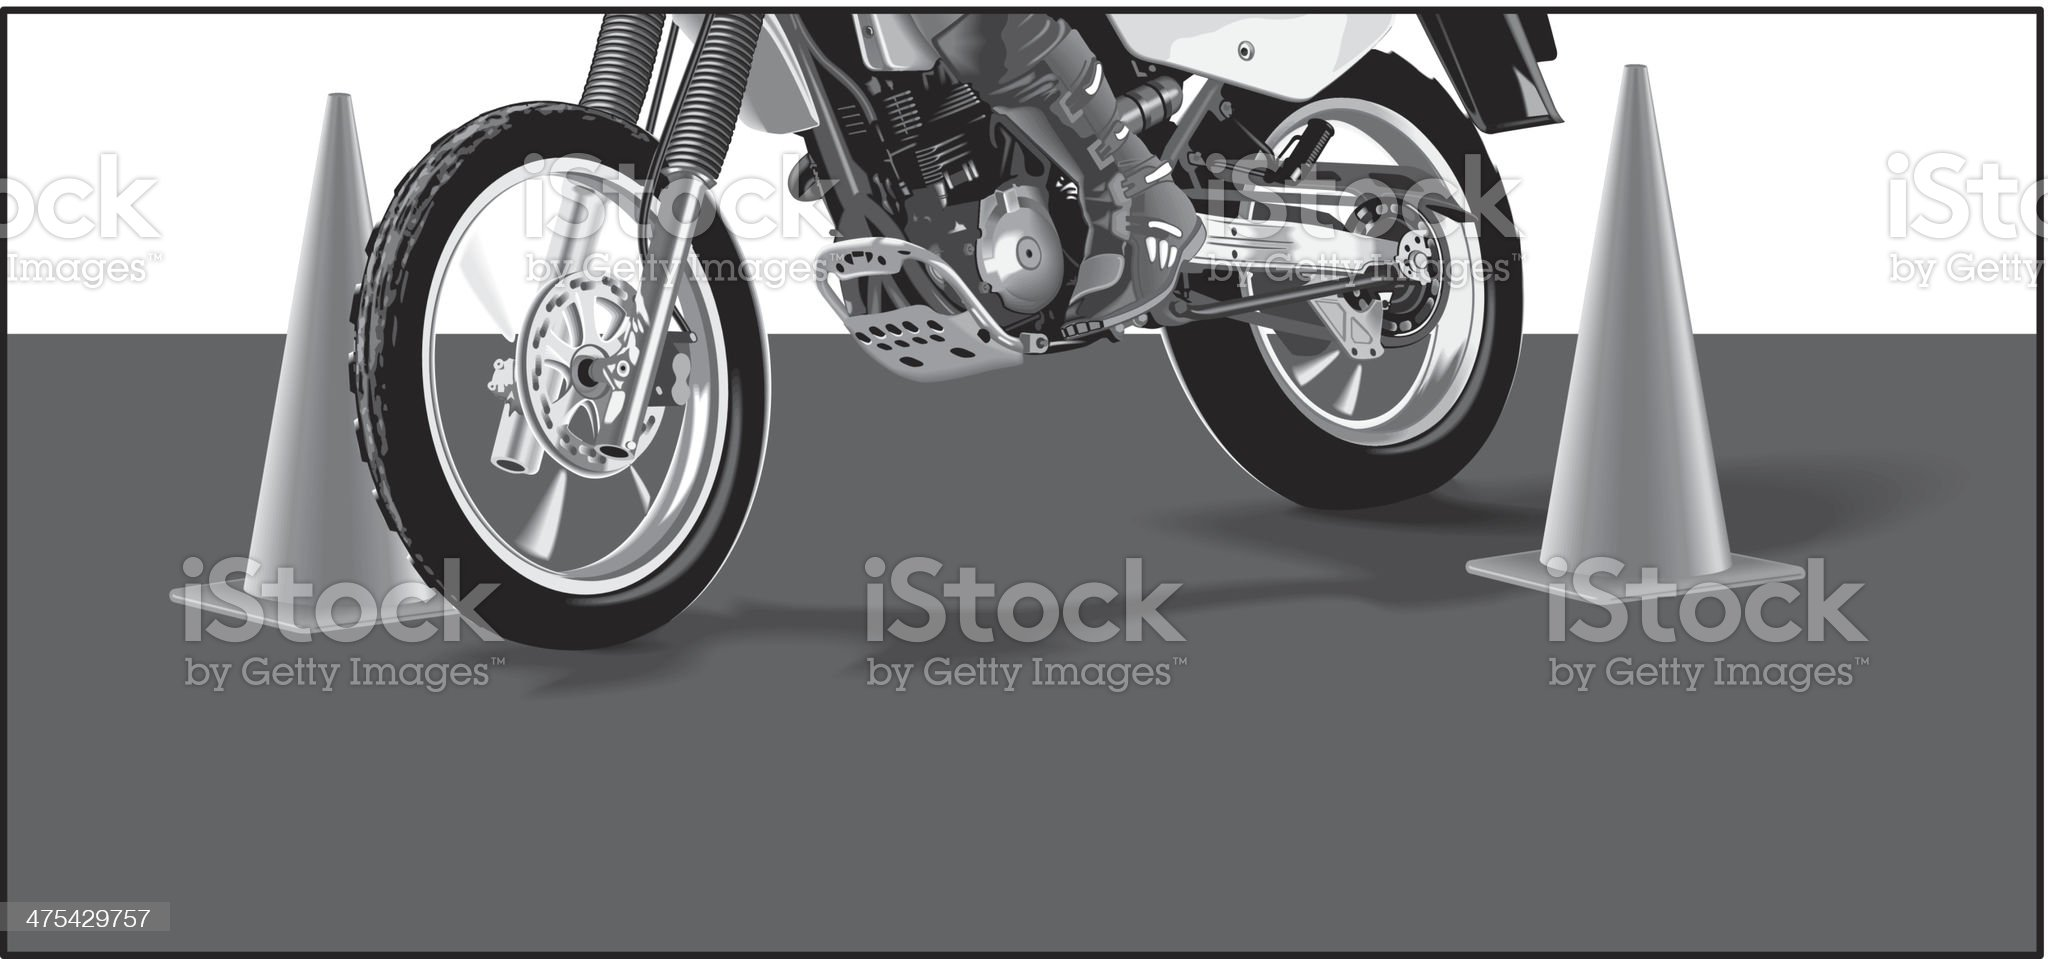 Motorcycle Pylons royalty-free stock vector art